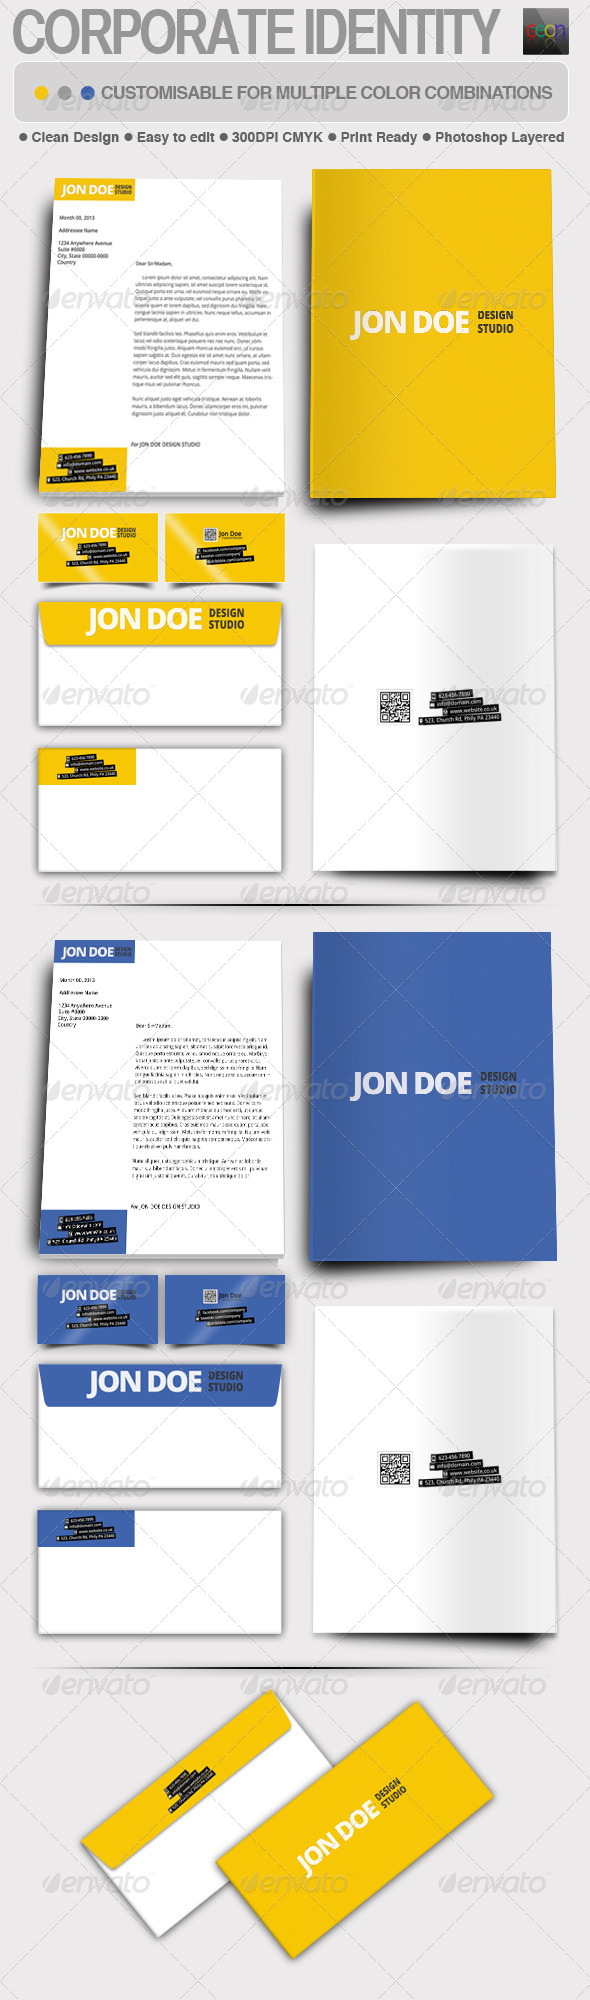 GraphicRiver Corporate Identity for Design Studio 5194263